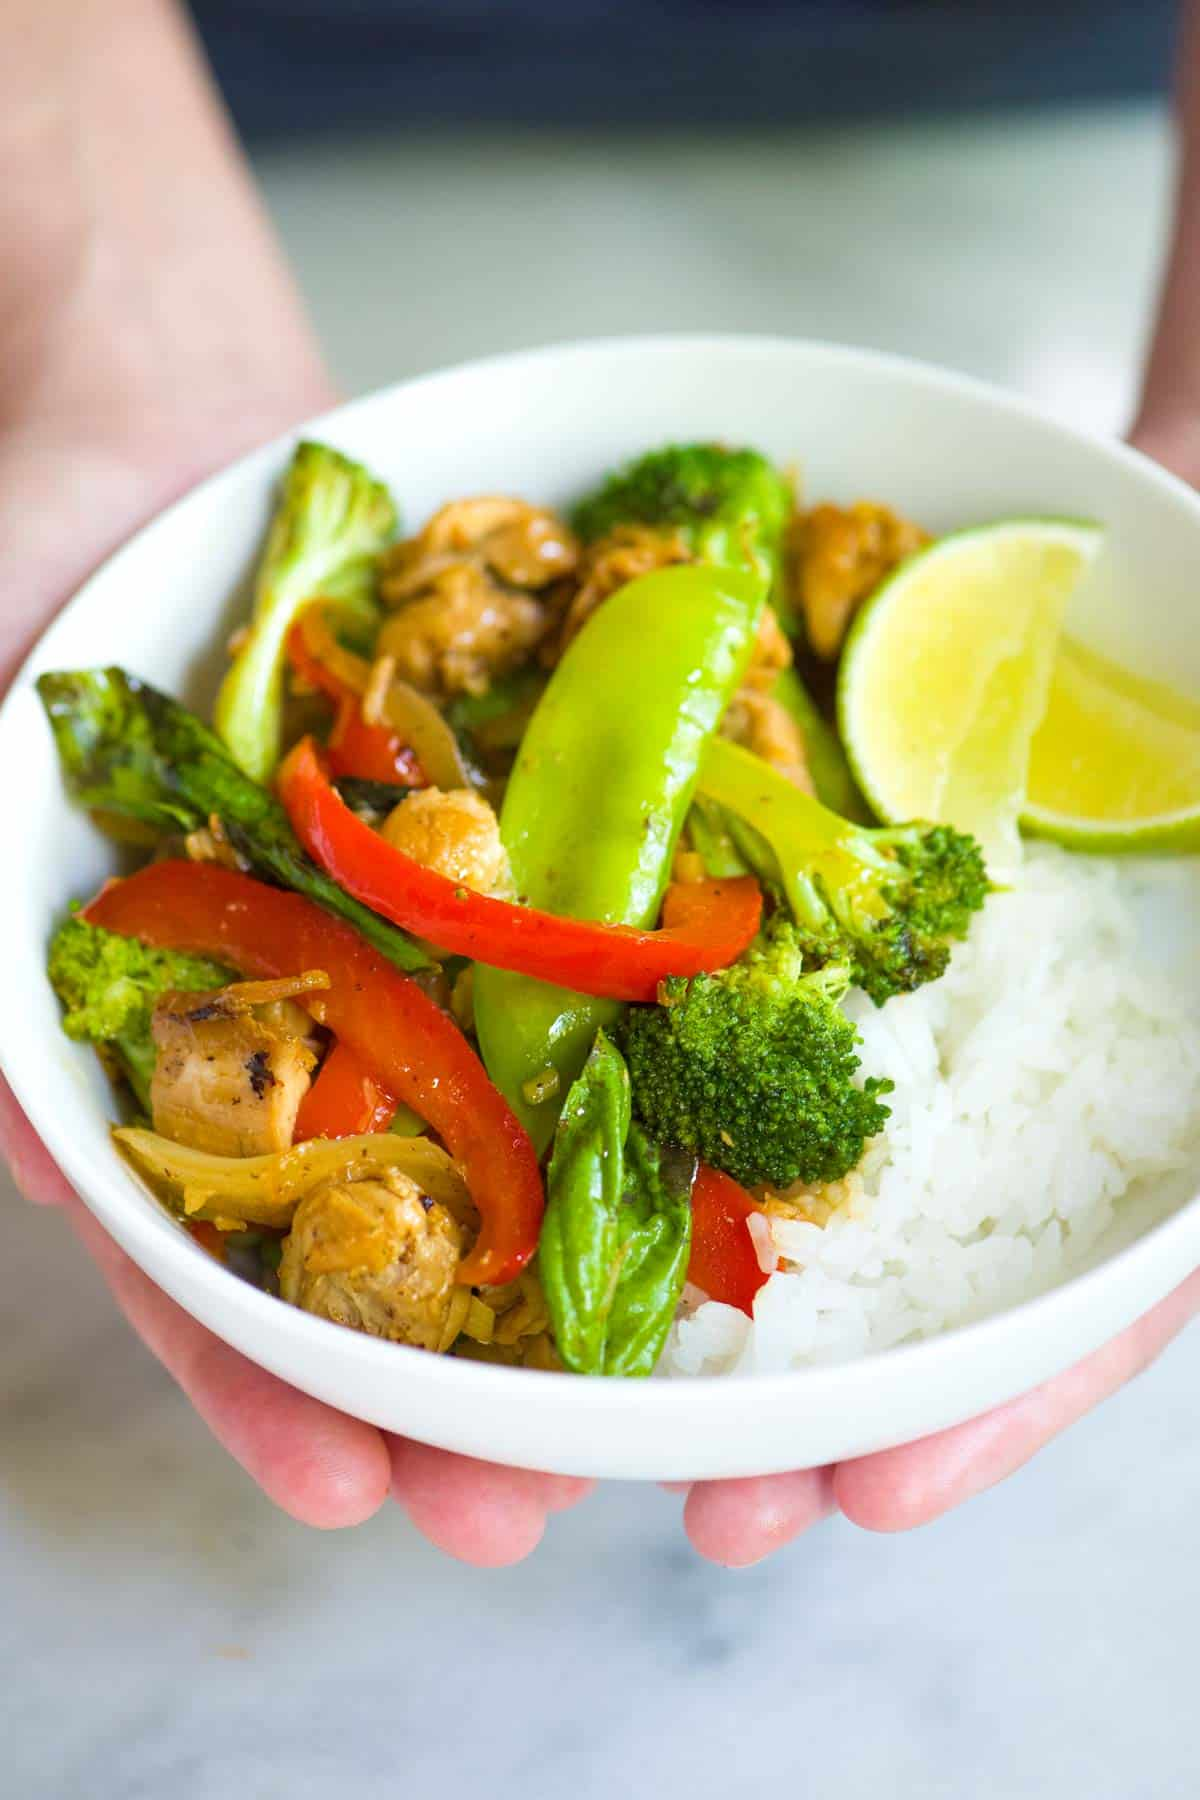 Bowl of chicken stir fry with vegetables and rice